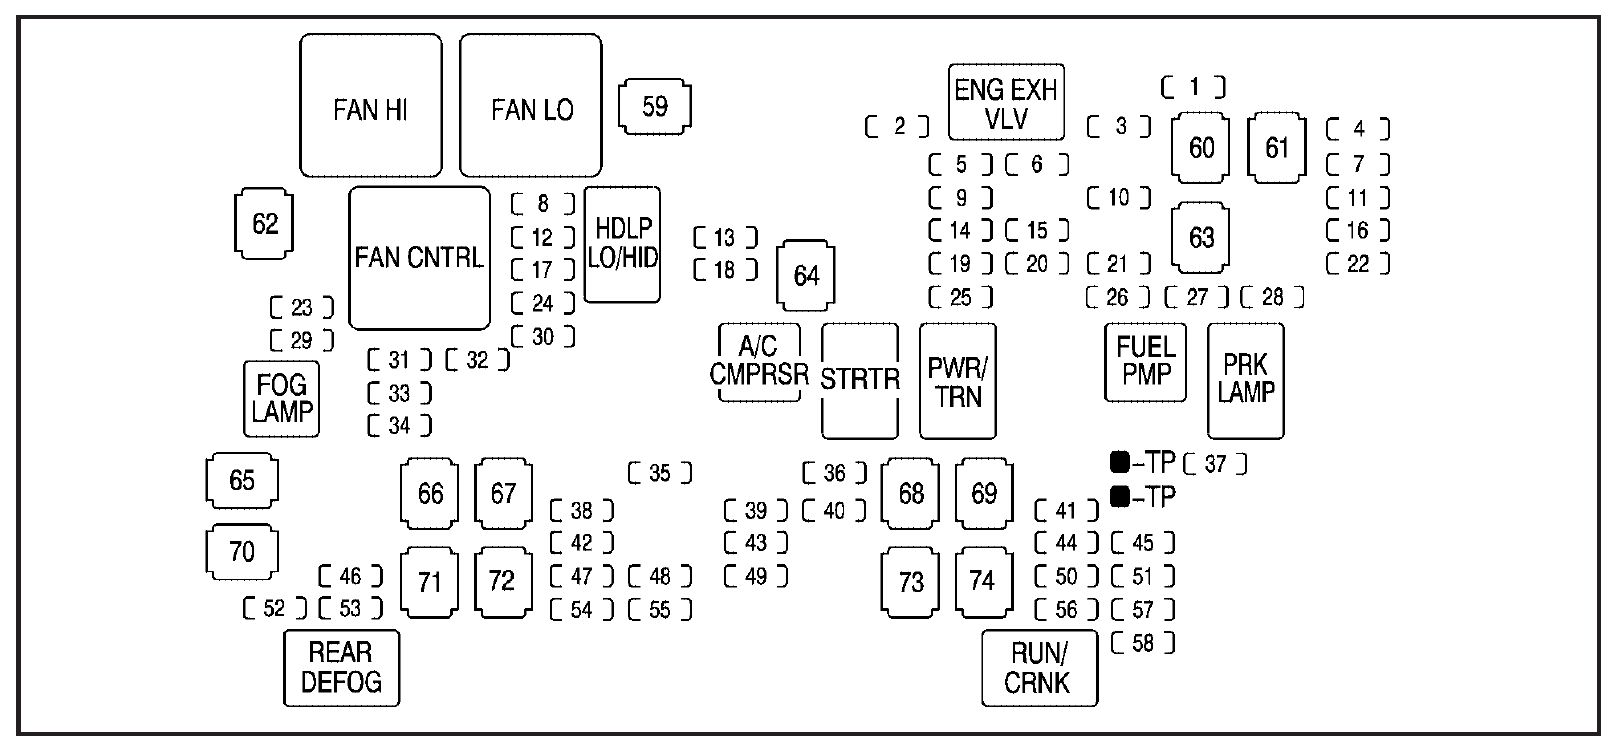 Gmc Sierra Fuse Box Location : 28 Wiring Diagram Images